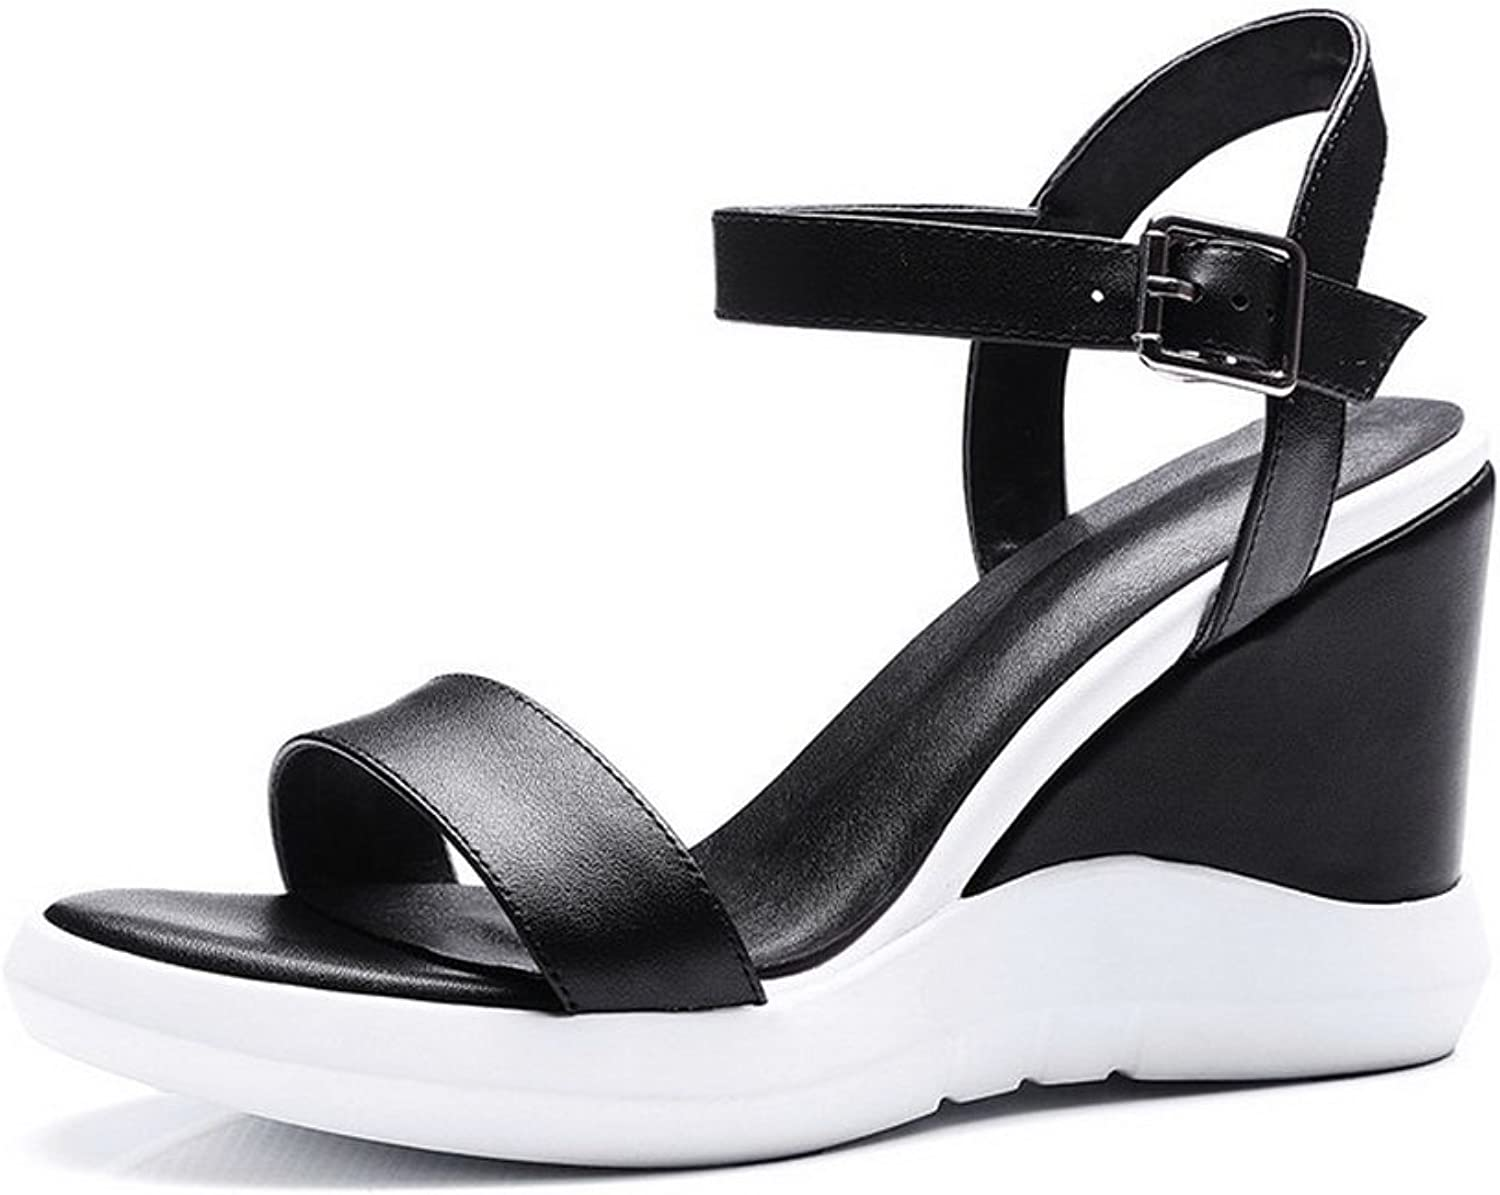 1TO9 Womens Wedges Platform Buckle Pleather Platforms Sandals MJS02682